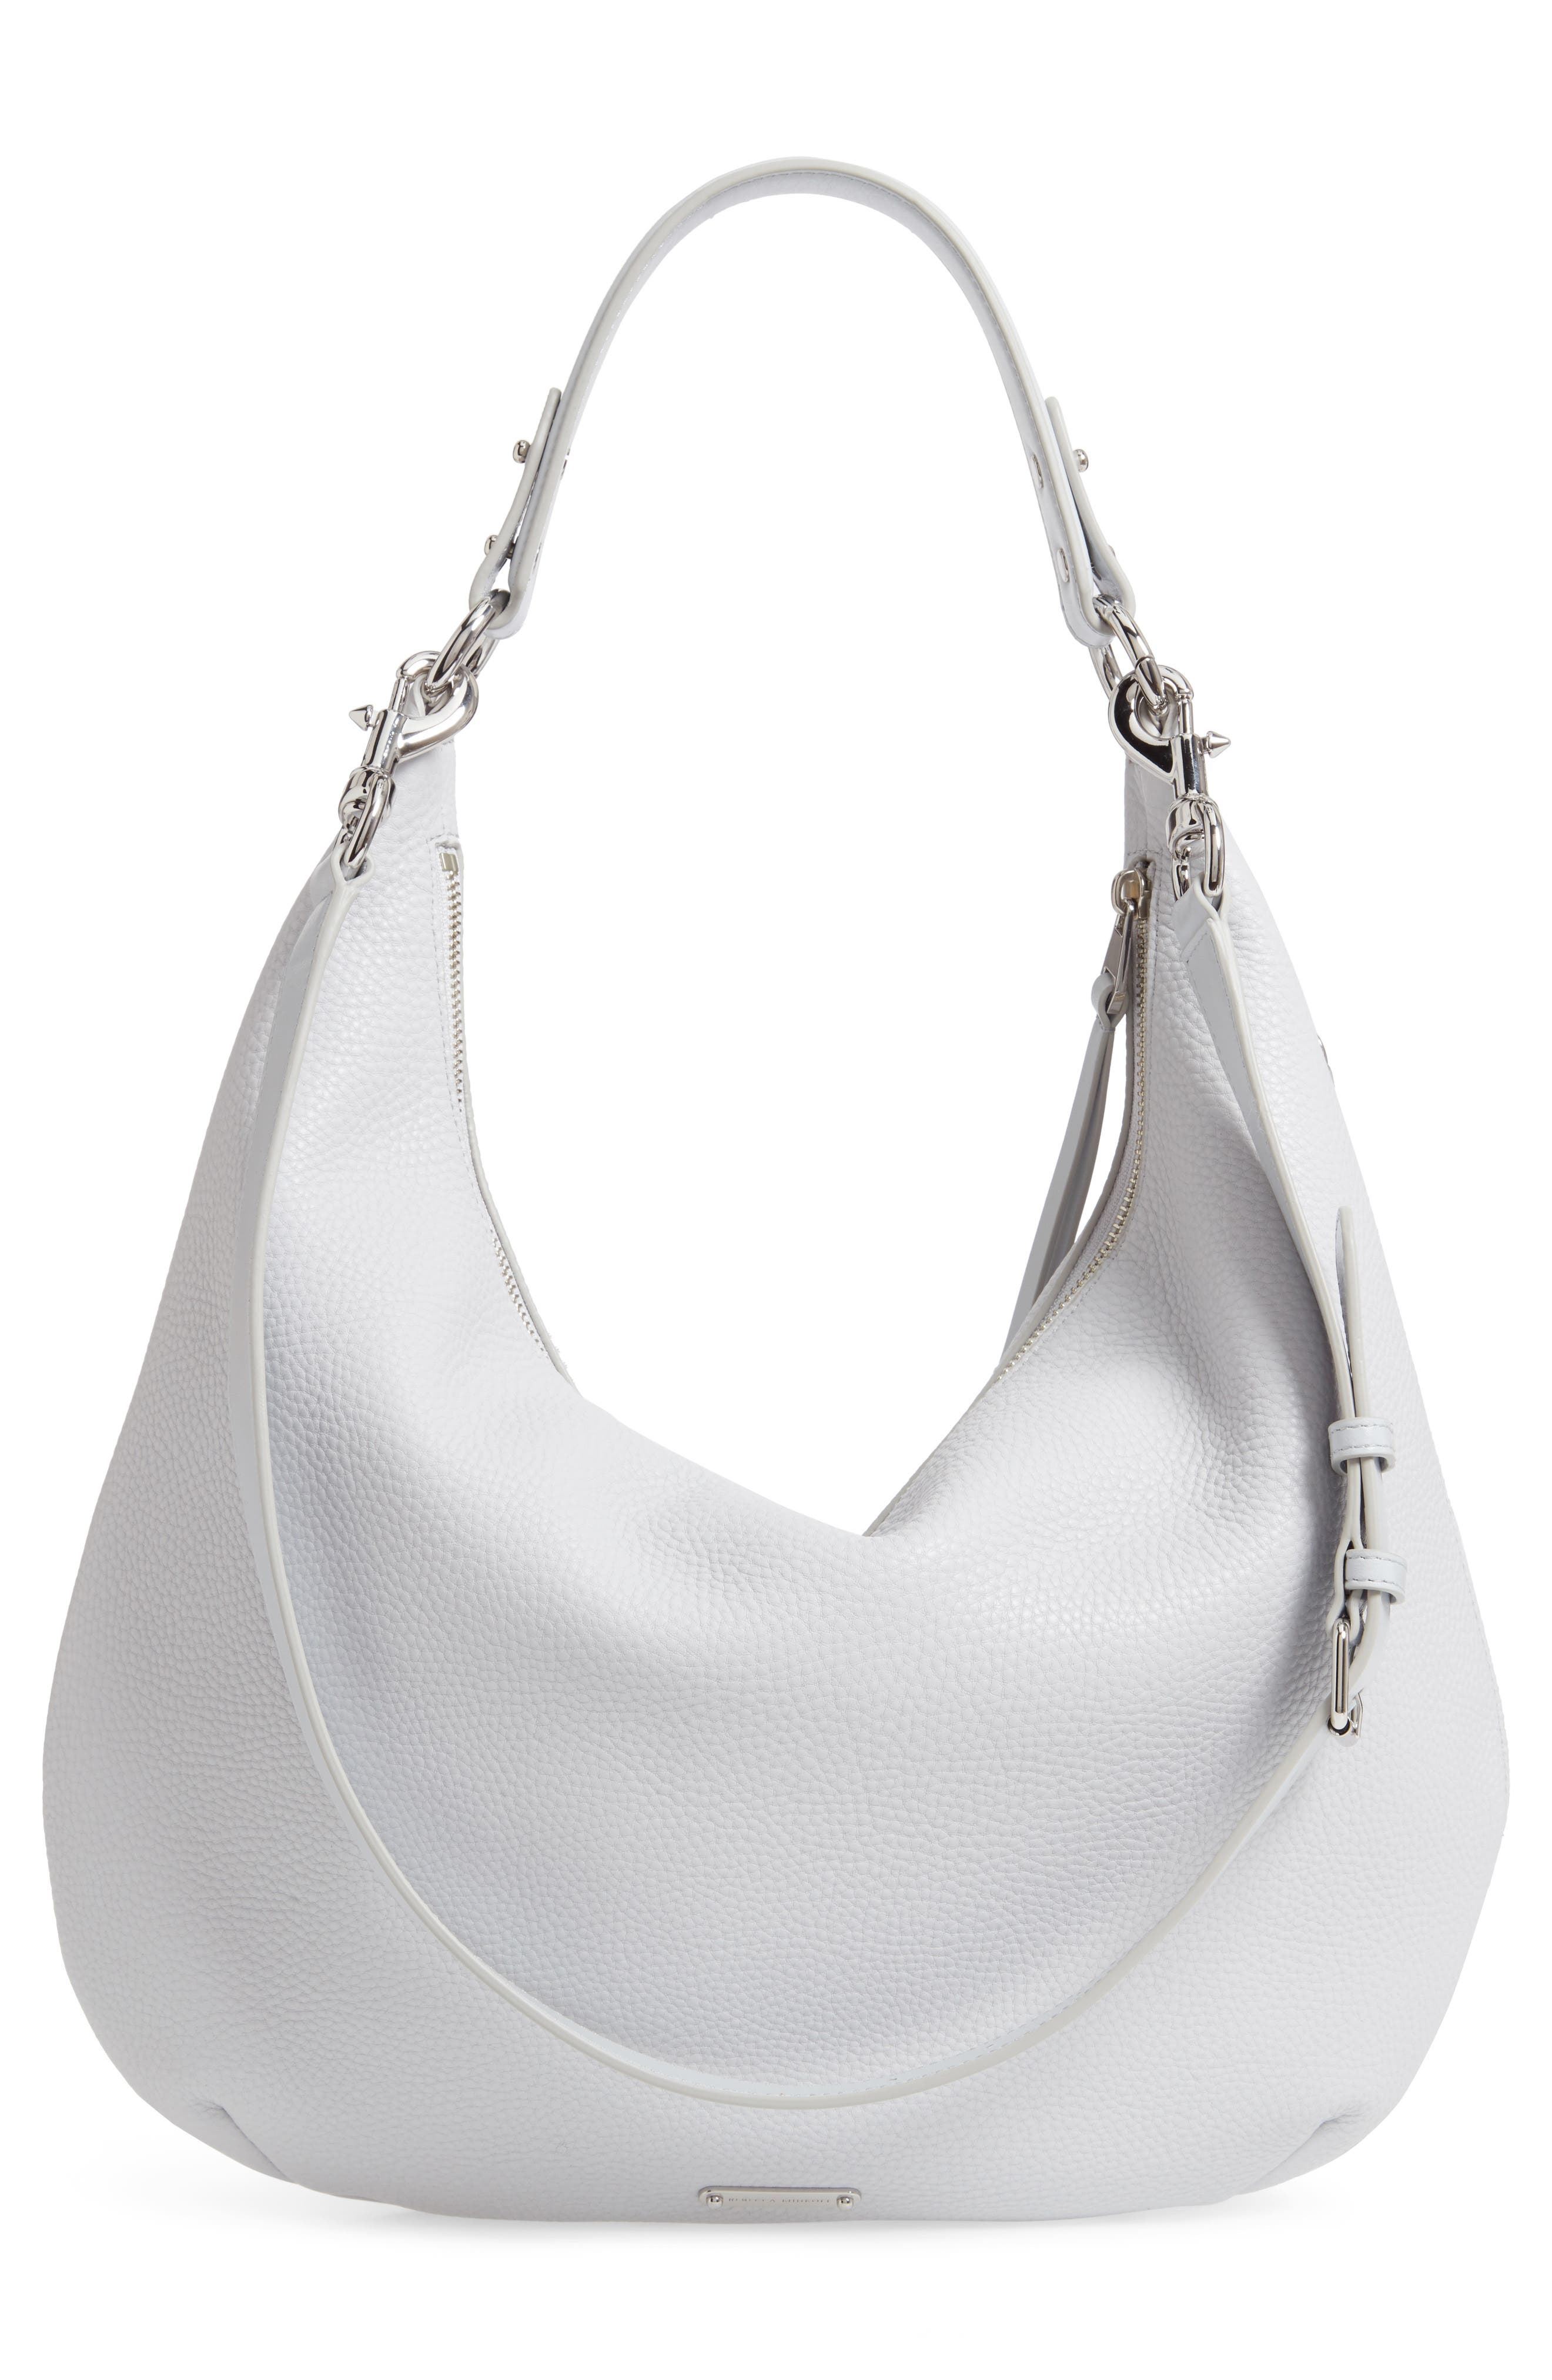 REBECCA MINKOFF, Michelle Leather Hobo, Alternate thumbnail 4, color, ICE GREY